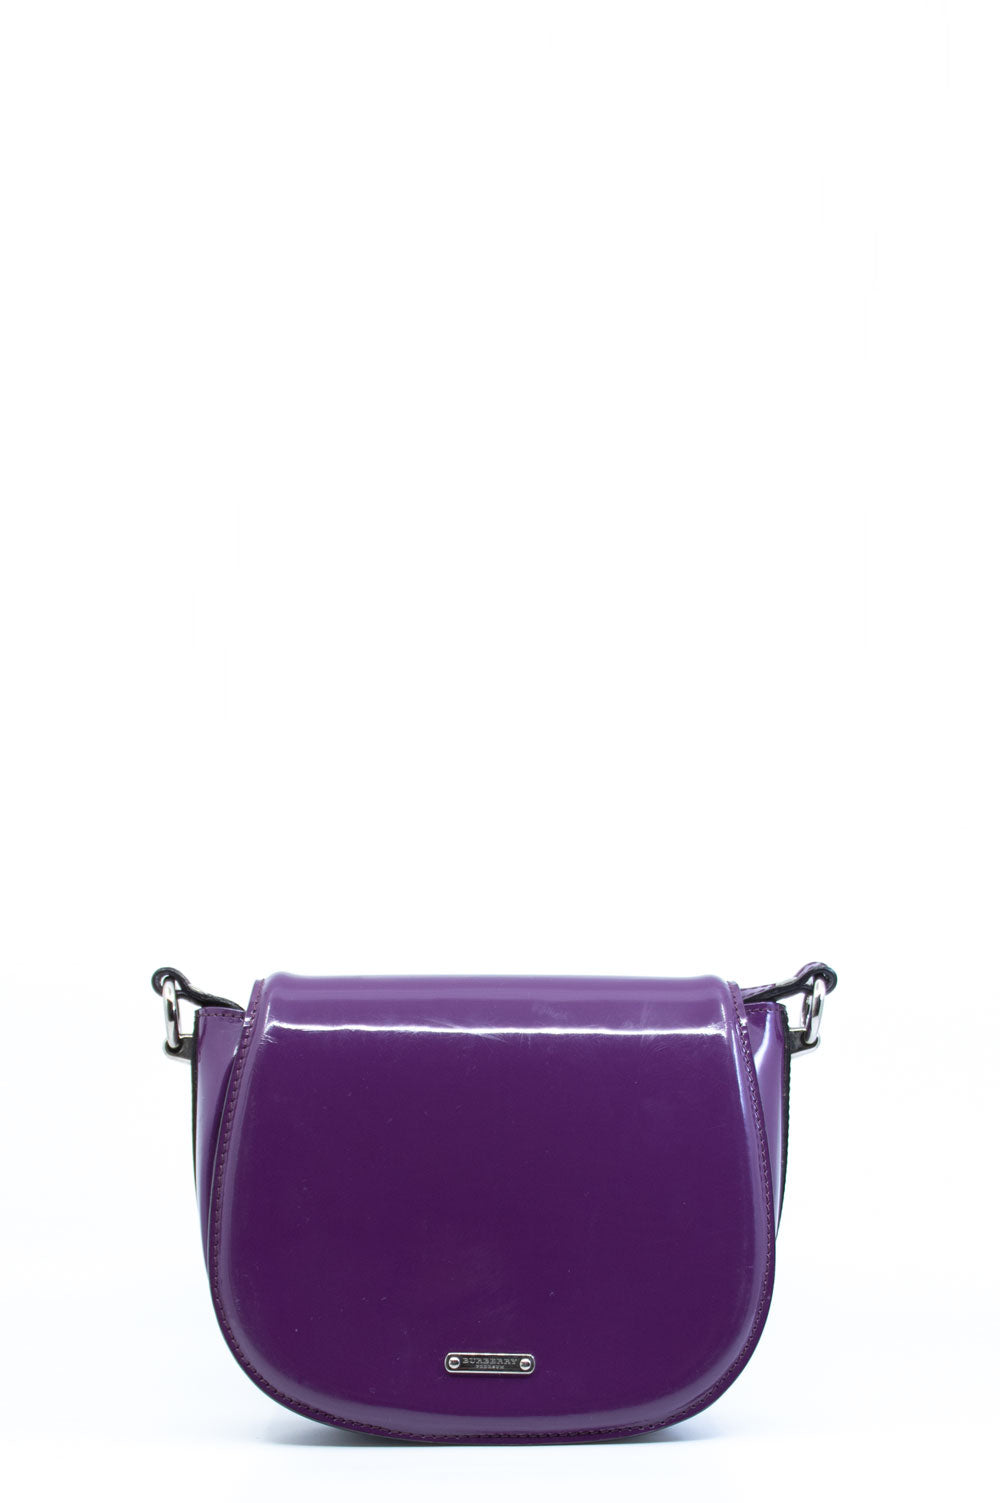 Burberry Lackleder Crossbody Tasche in violett.